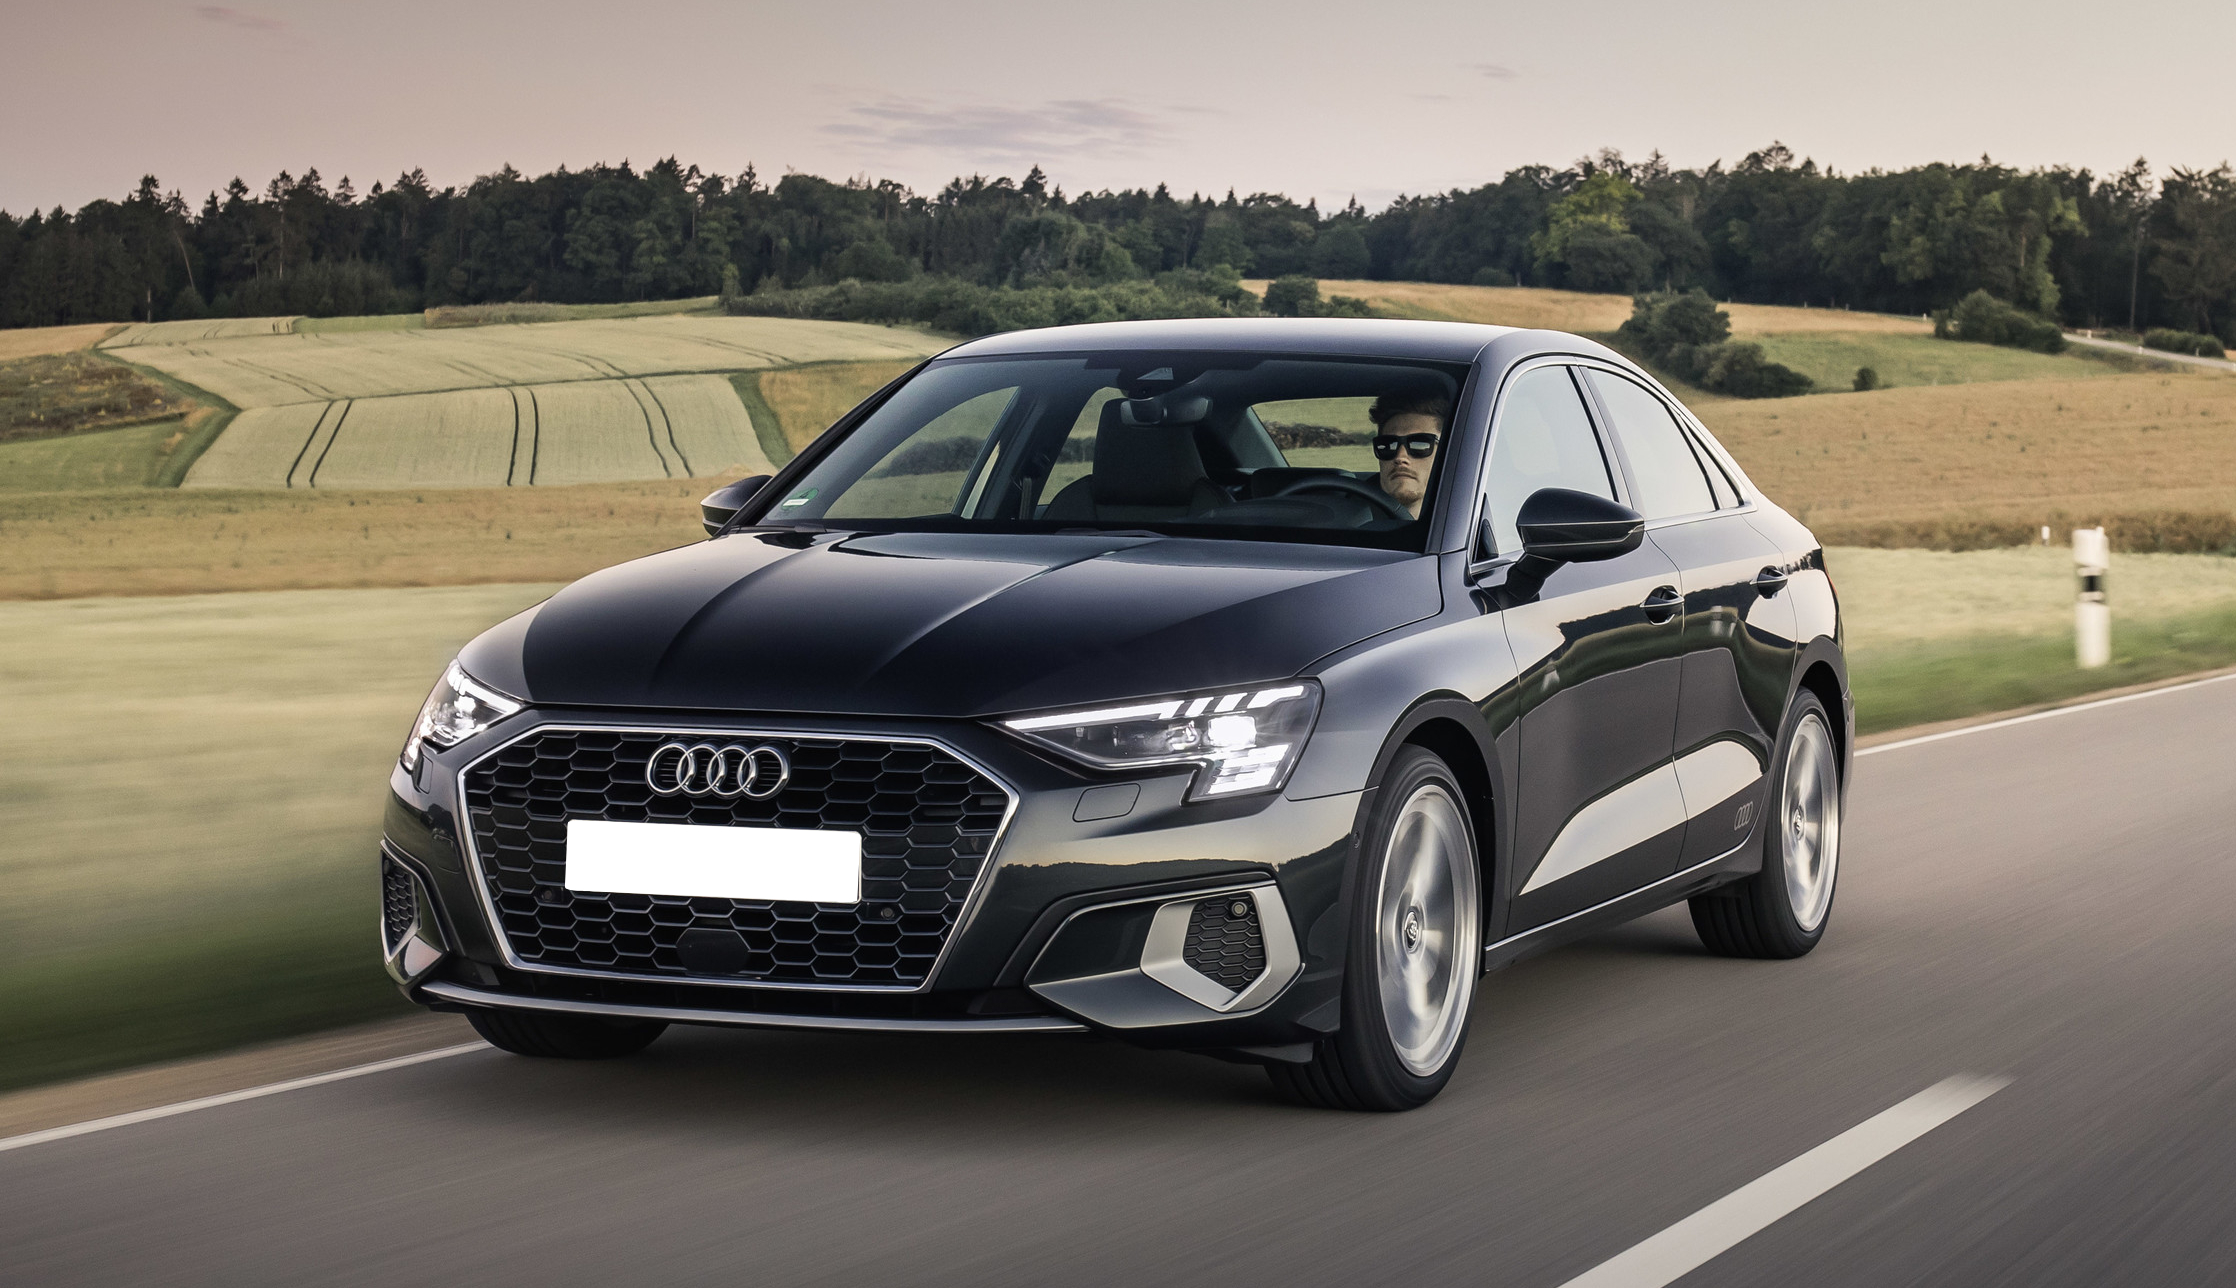 Audi A3 Saloon Review 2021 | carwow